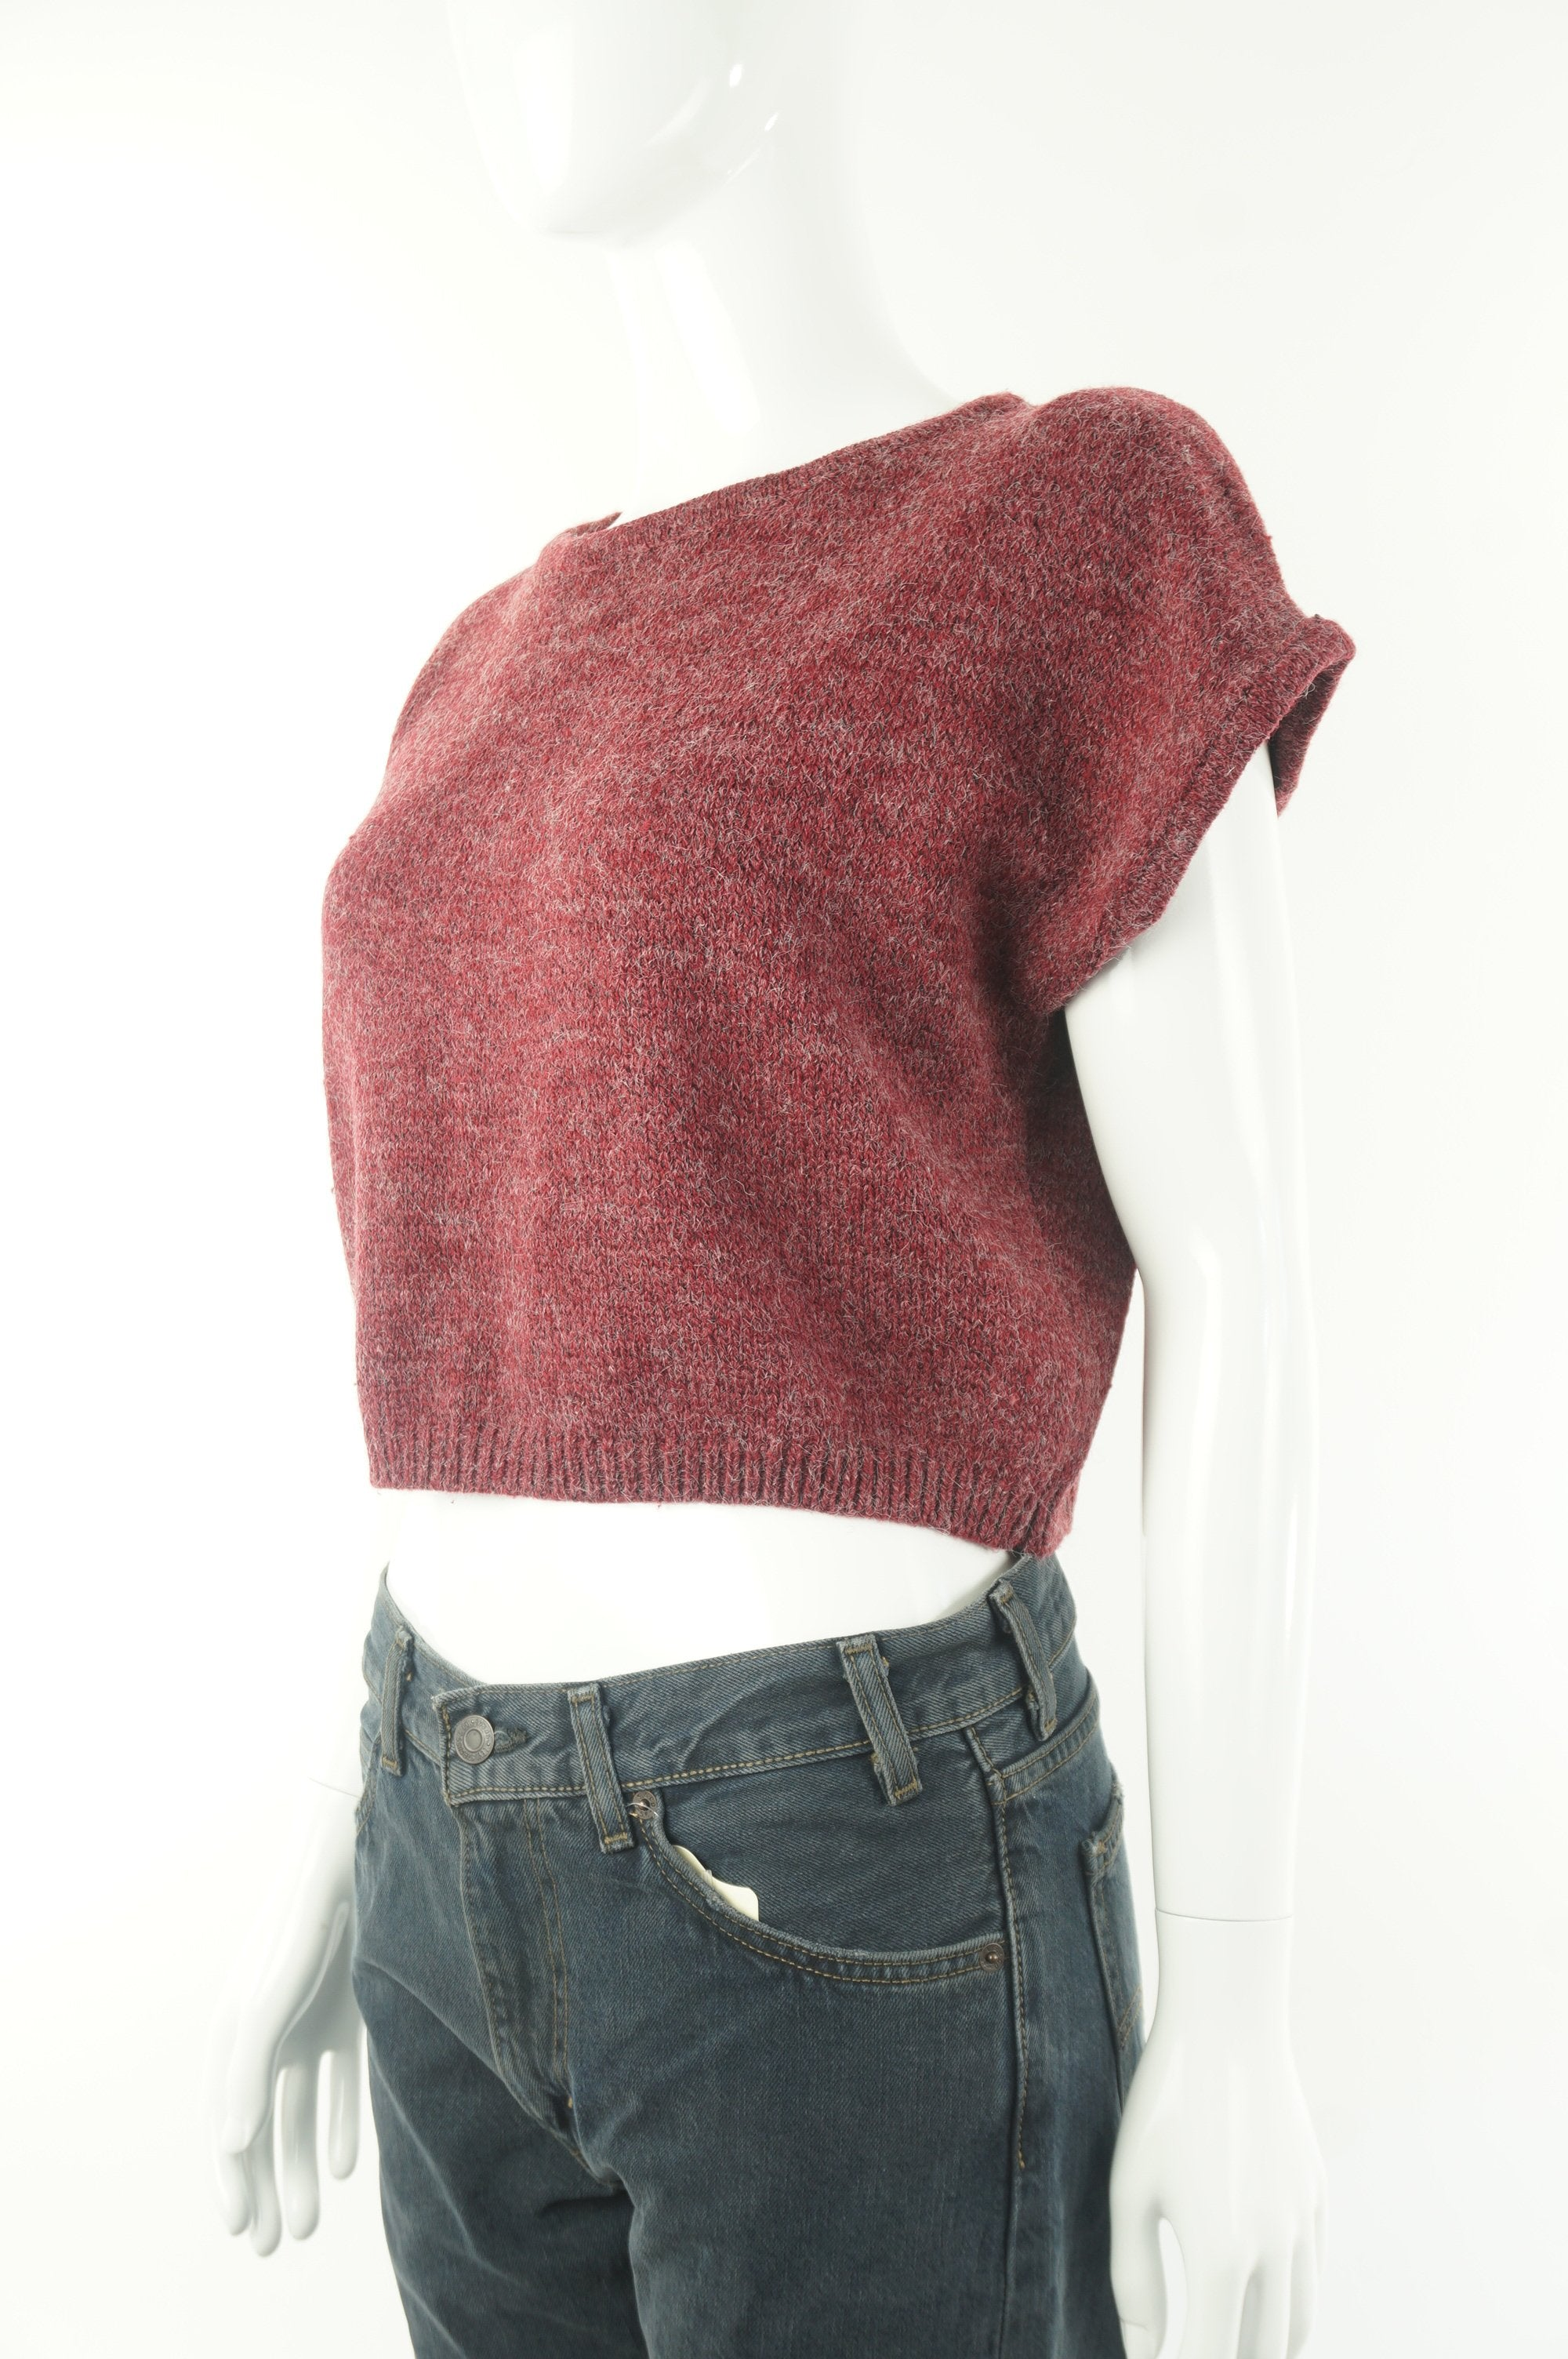 Editor Capped Sleeve Crop Top Sweater, Stylish crop-top sweater for the spring., Red, , women's Tops, women's Red Tops, Editor women's Tops, aritzia women's sweater, aritzia women's crop top sweater, aritzia women's short sweater, women's red crop top sweater